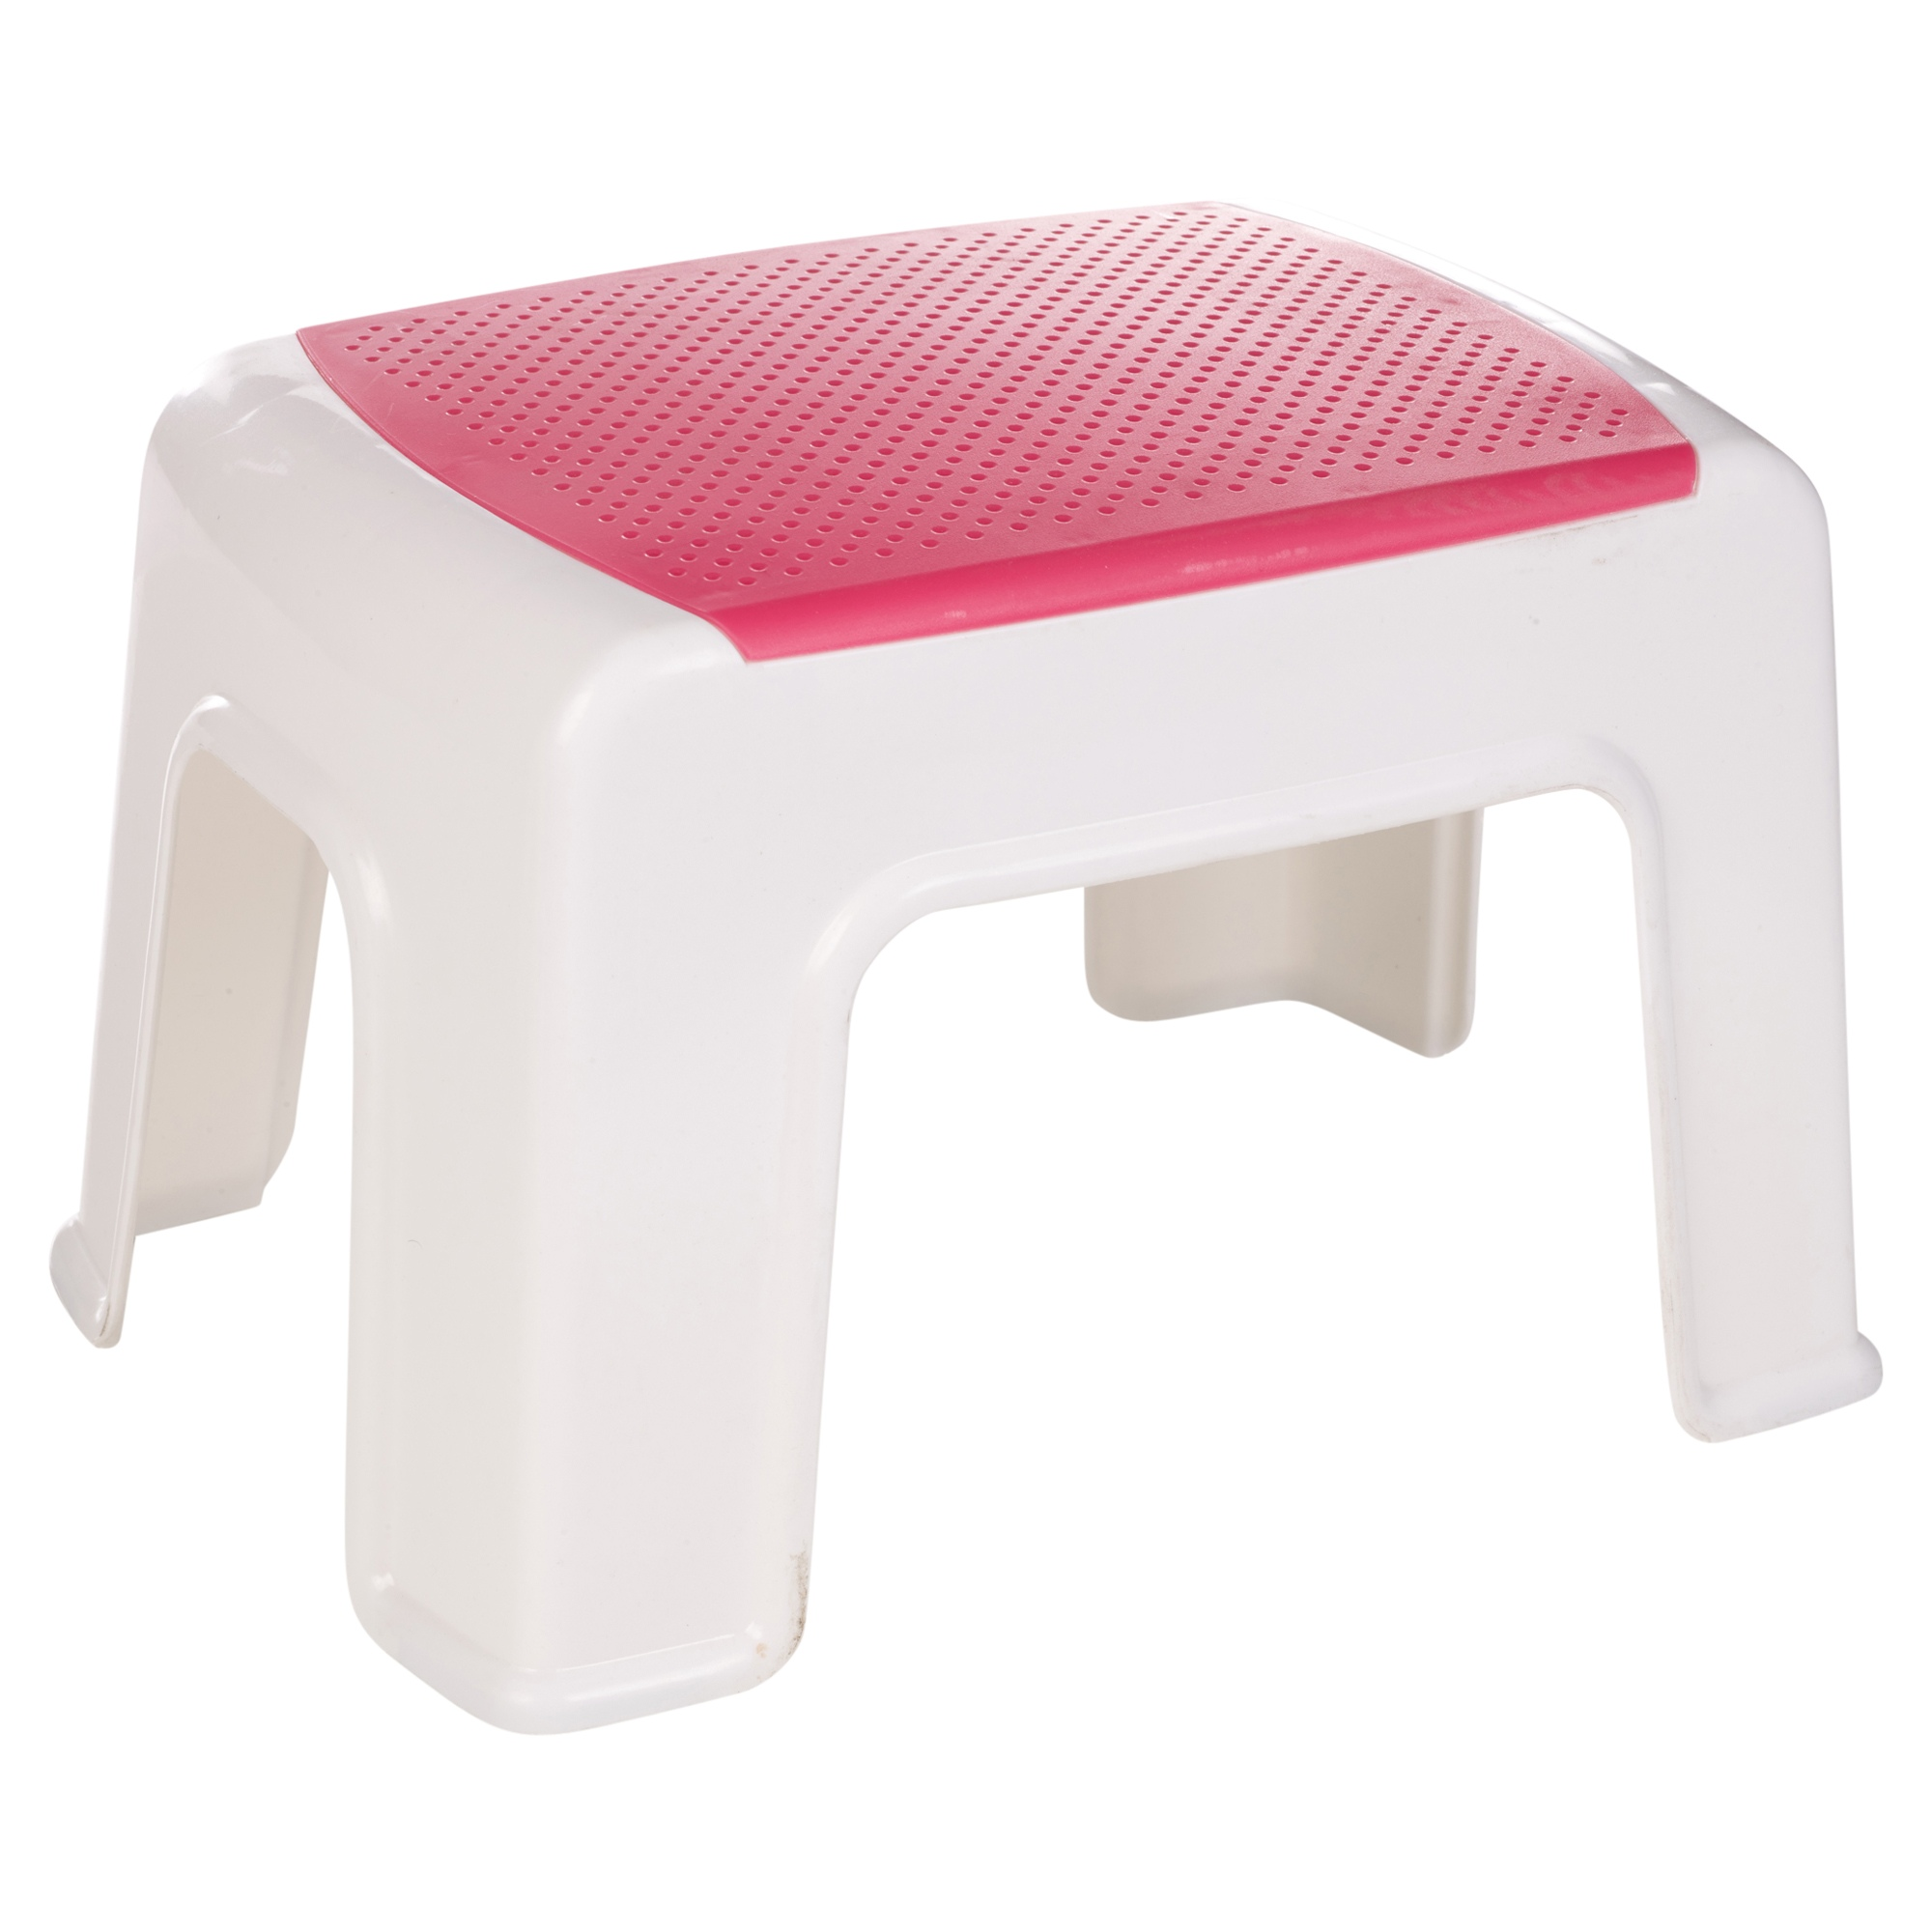 #A72445  Sturdy Plastic Step Stool Home Kitchen Stacking Footstool Kids NEW with 2000x2000 px of Recommended Plastic Stackable Stools 20002000 save image @ avoidforclosure.info